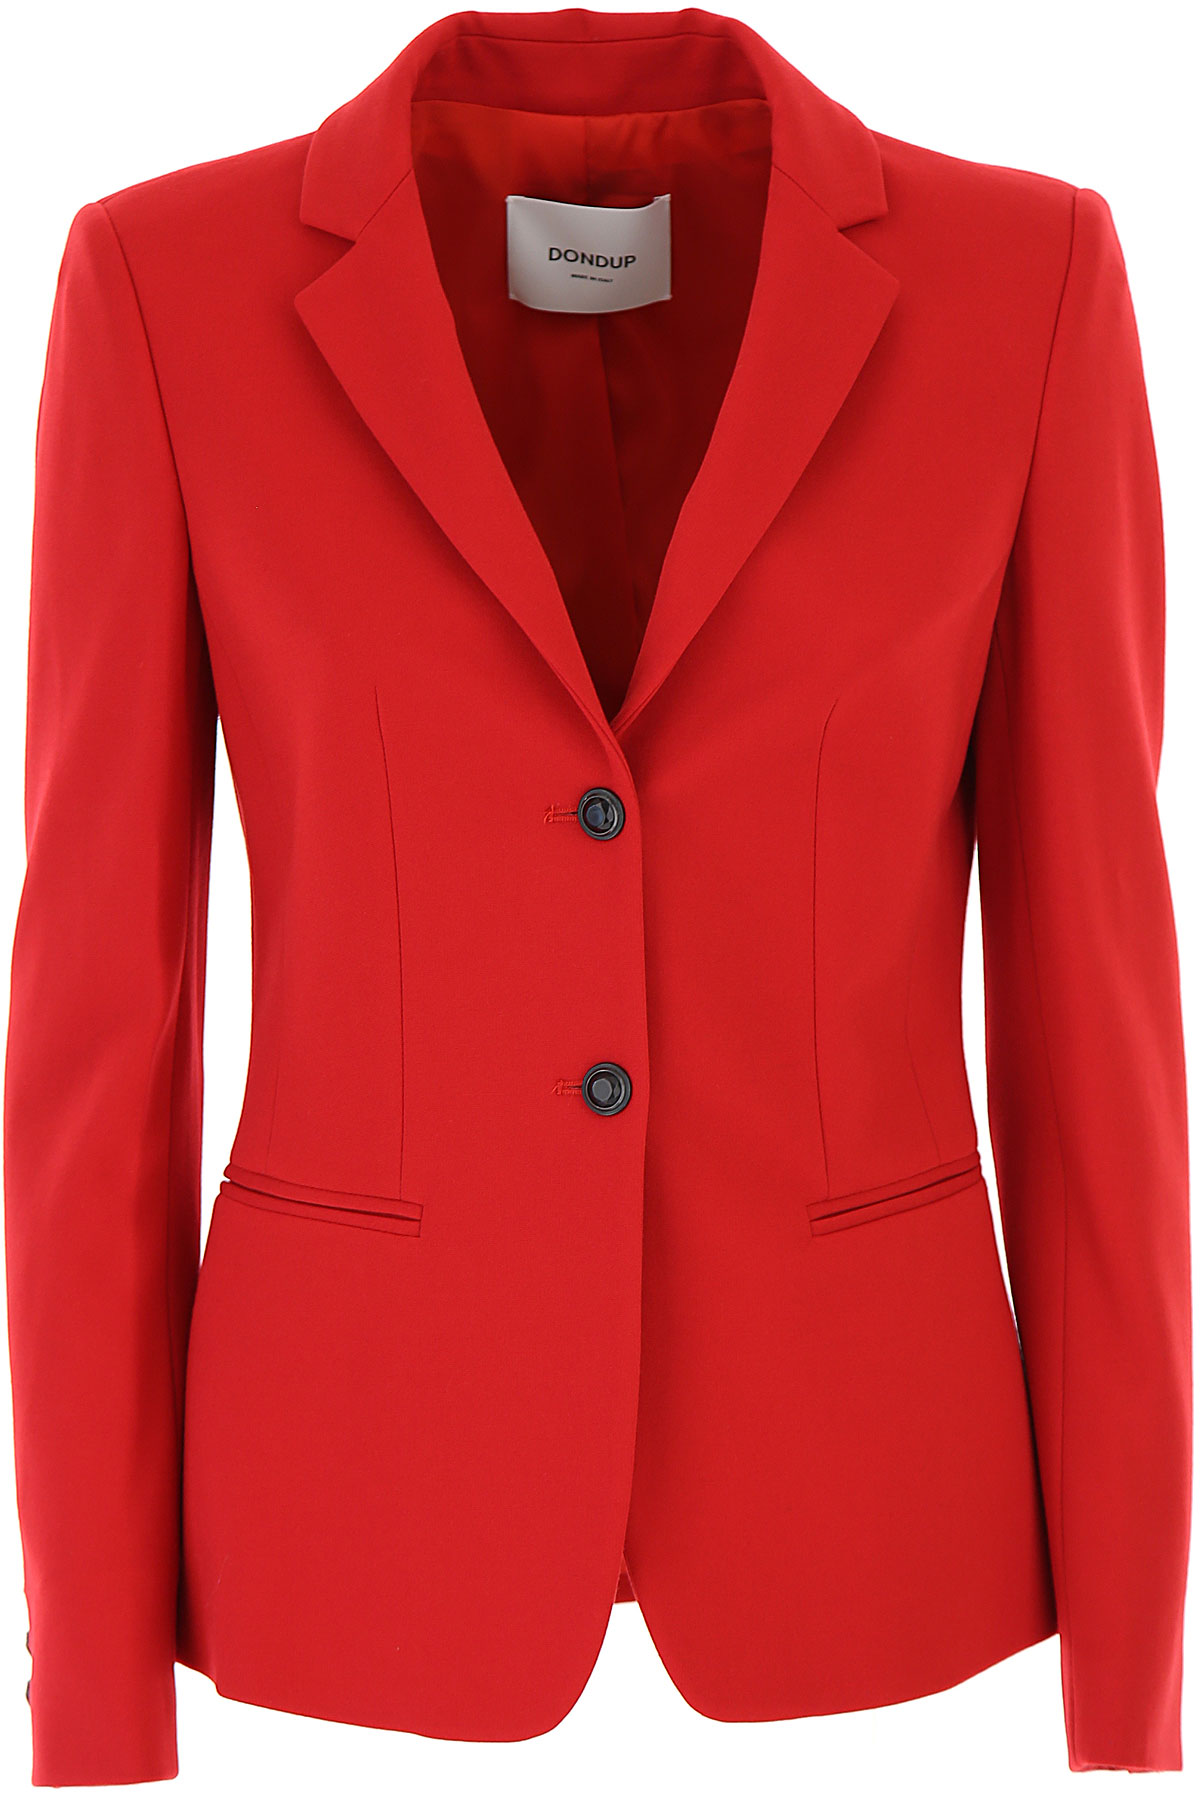 Dondup Blazer for Women On Sale, Fire Red, Viscose, 2019, 2 8